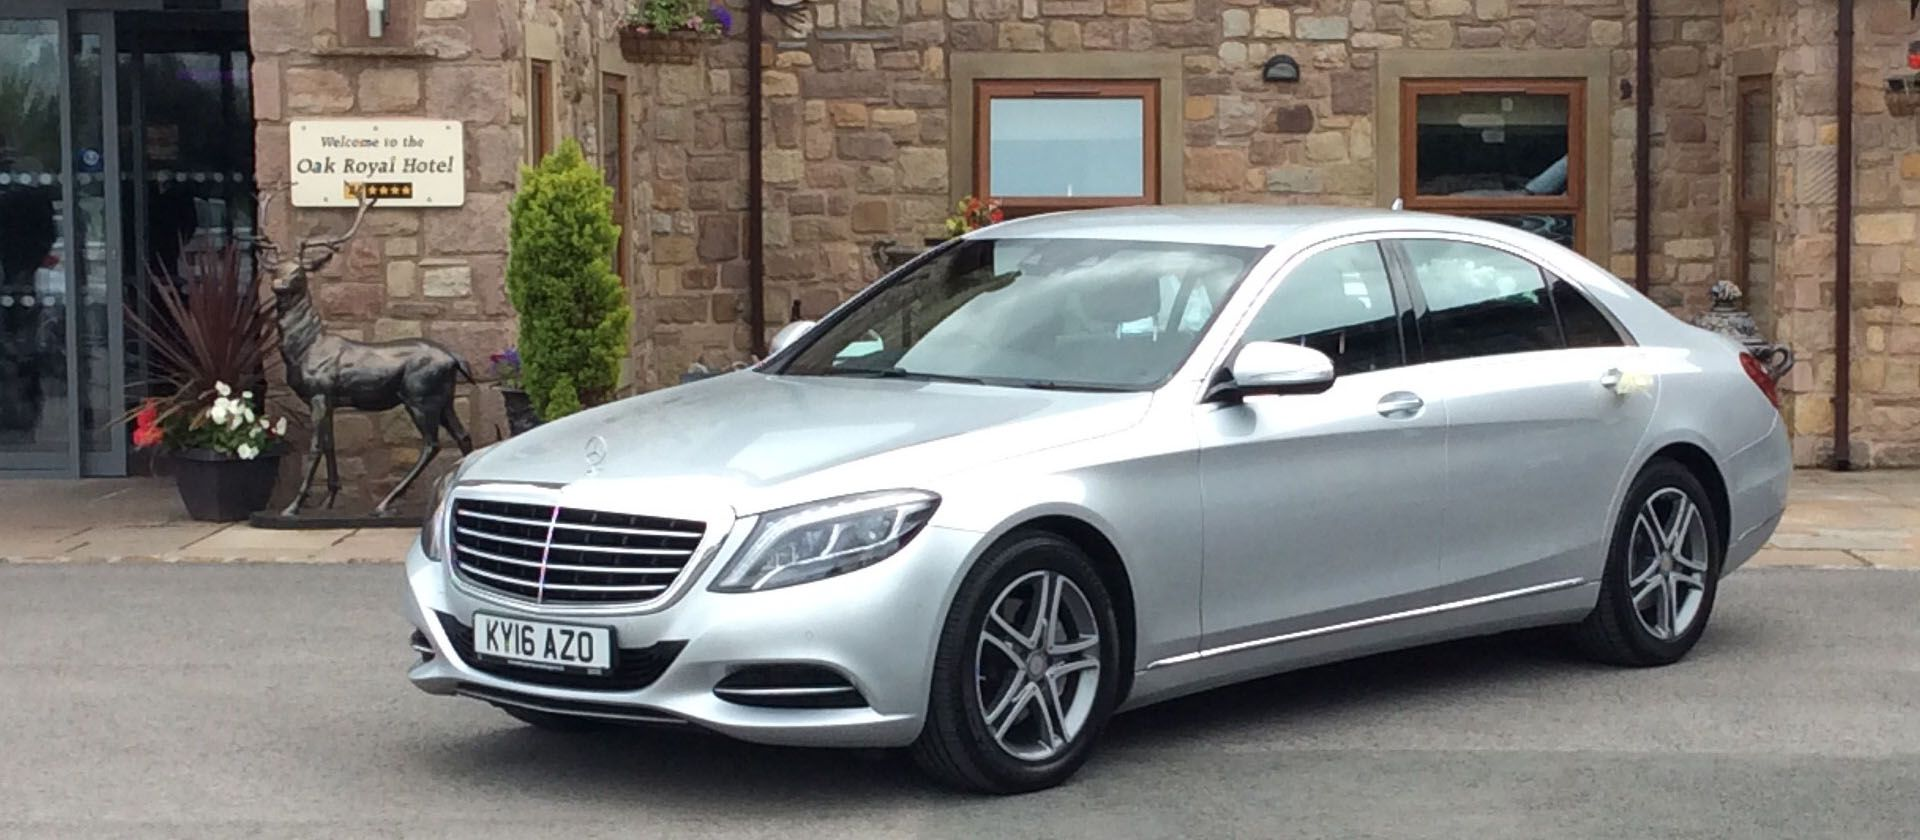 Pre Booking A Taxi Or Private Hire Airport Transfers Leeds Removes